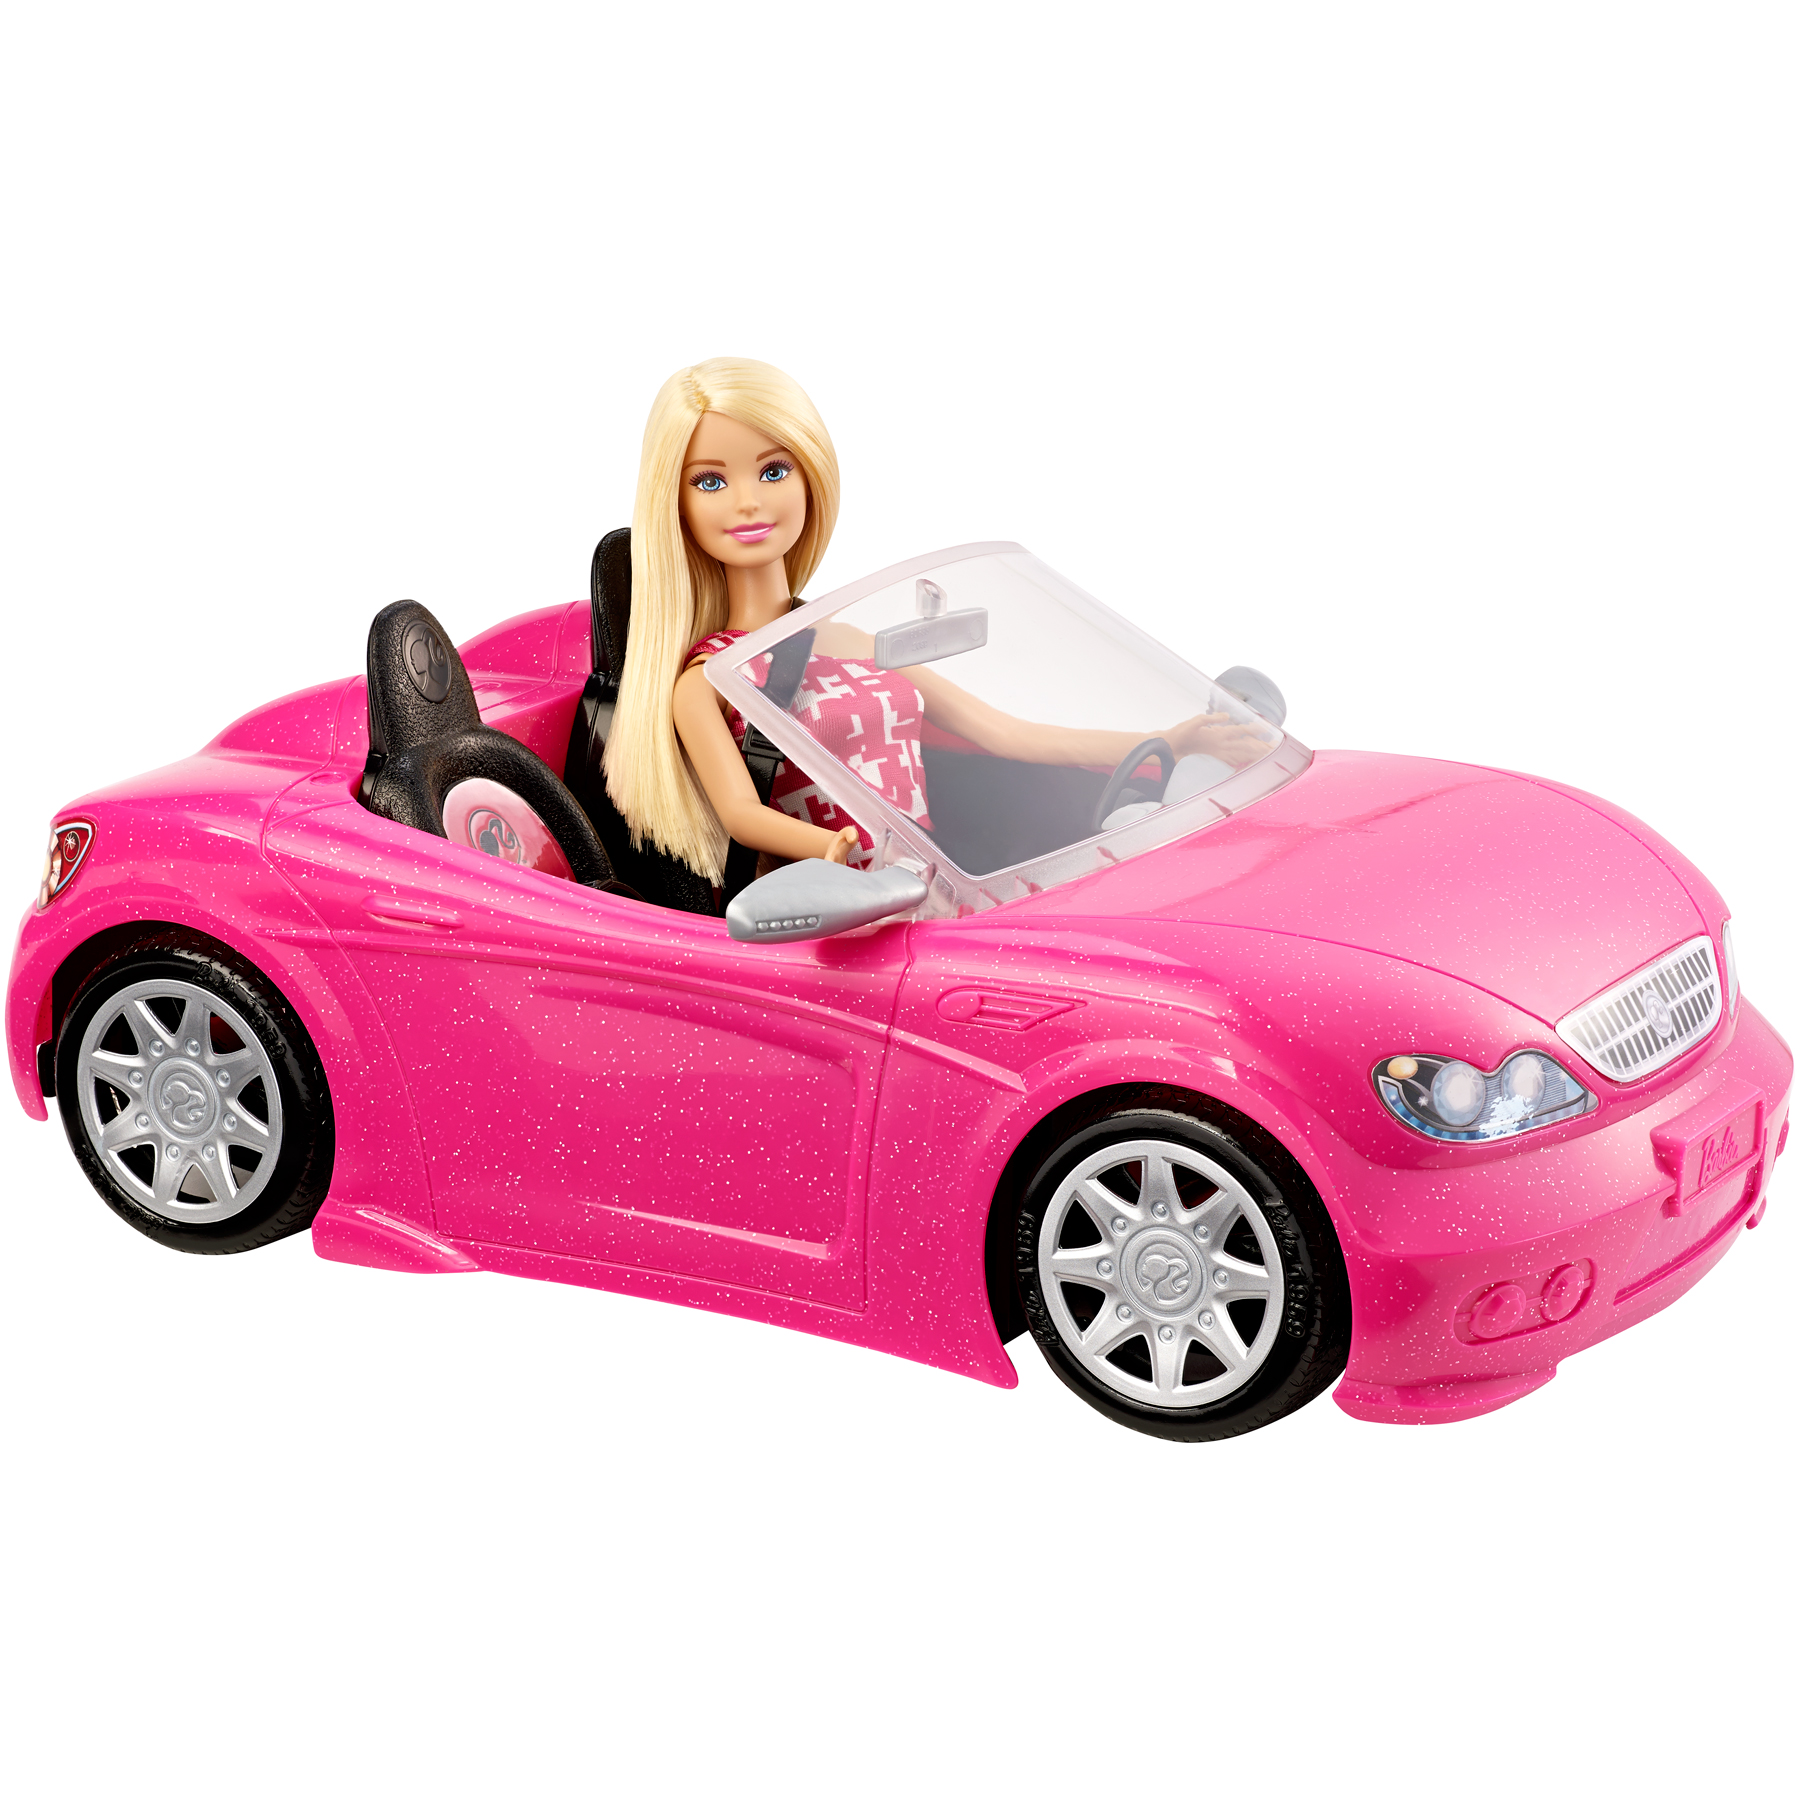 BARBIE GLAM CONVERTIBLE SPORTS CAR DOLL TOY SET 2 SEATER